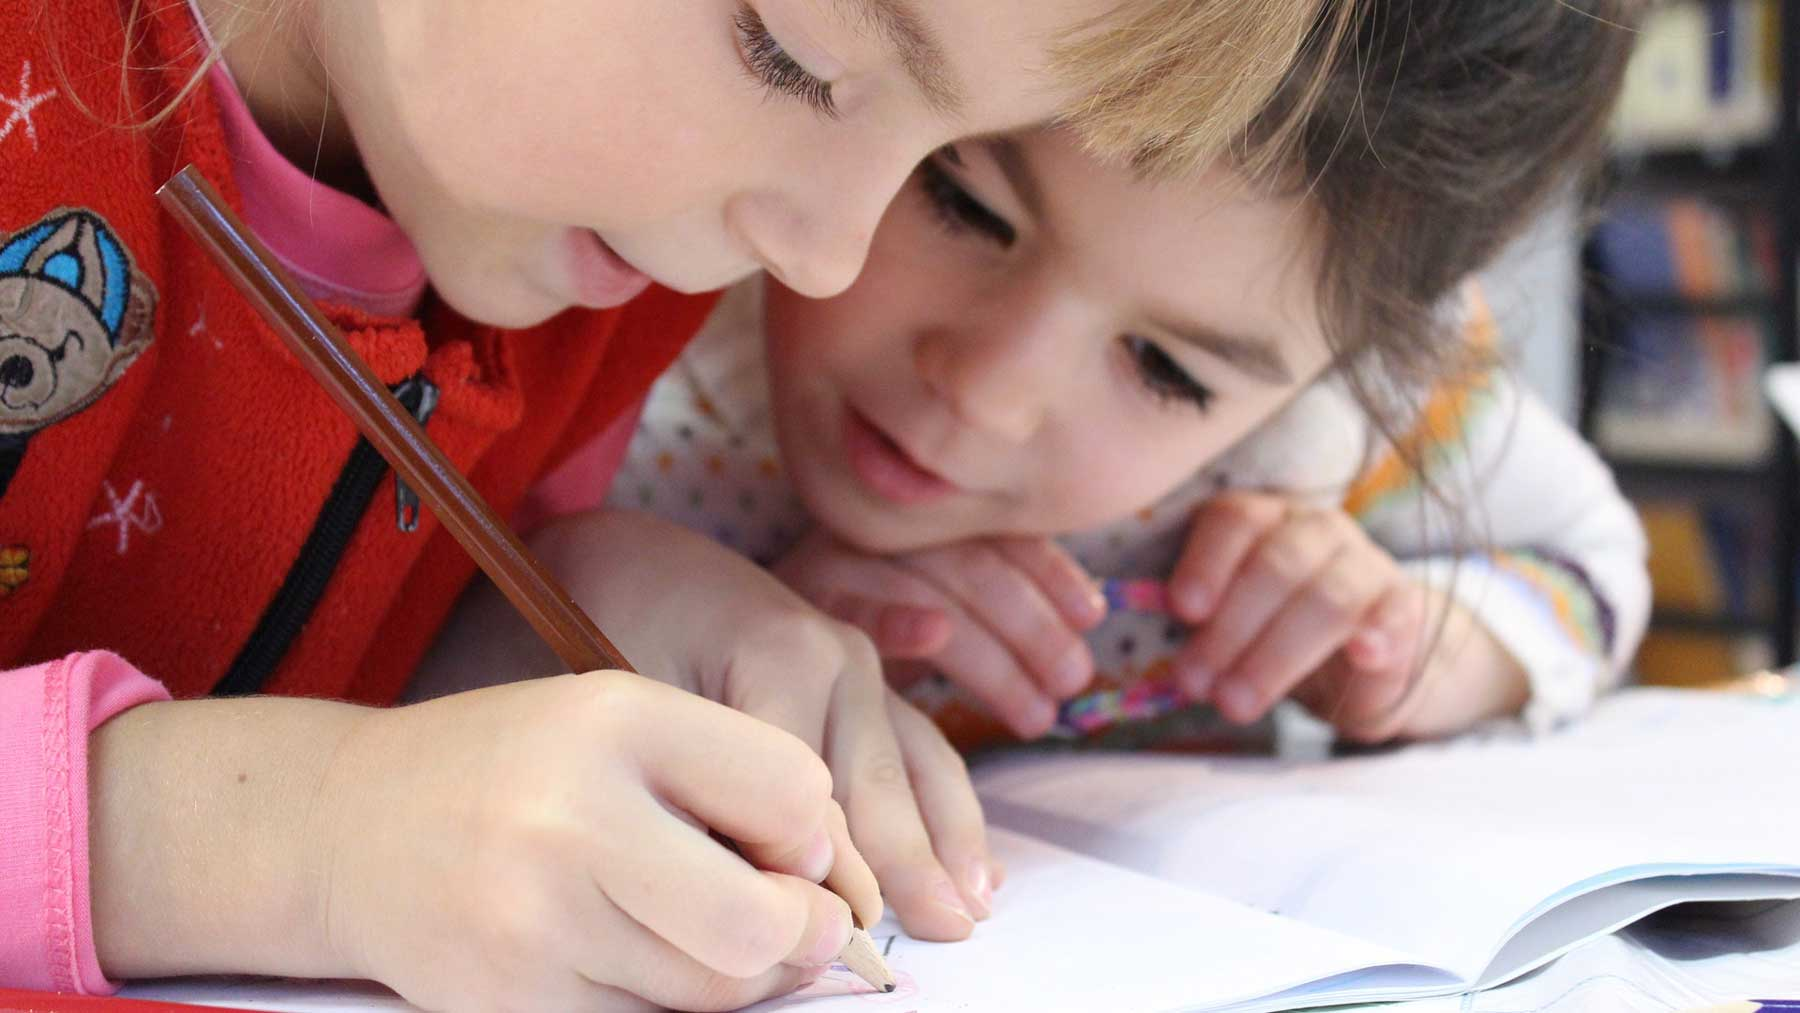 two young children learning to write with heads bent over notebooks and pencils